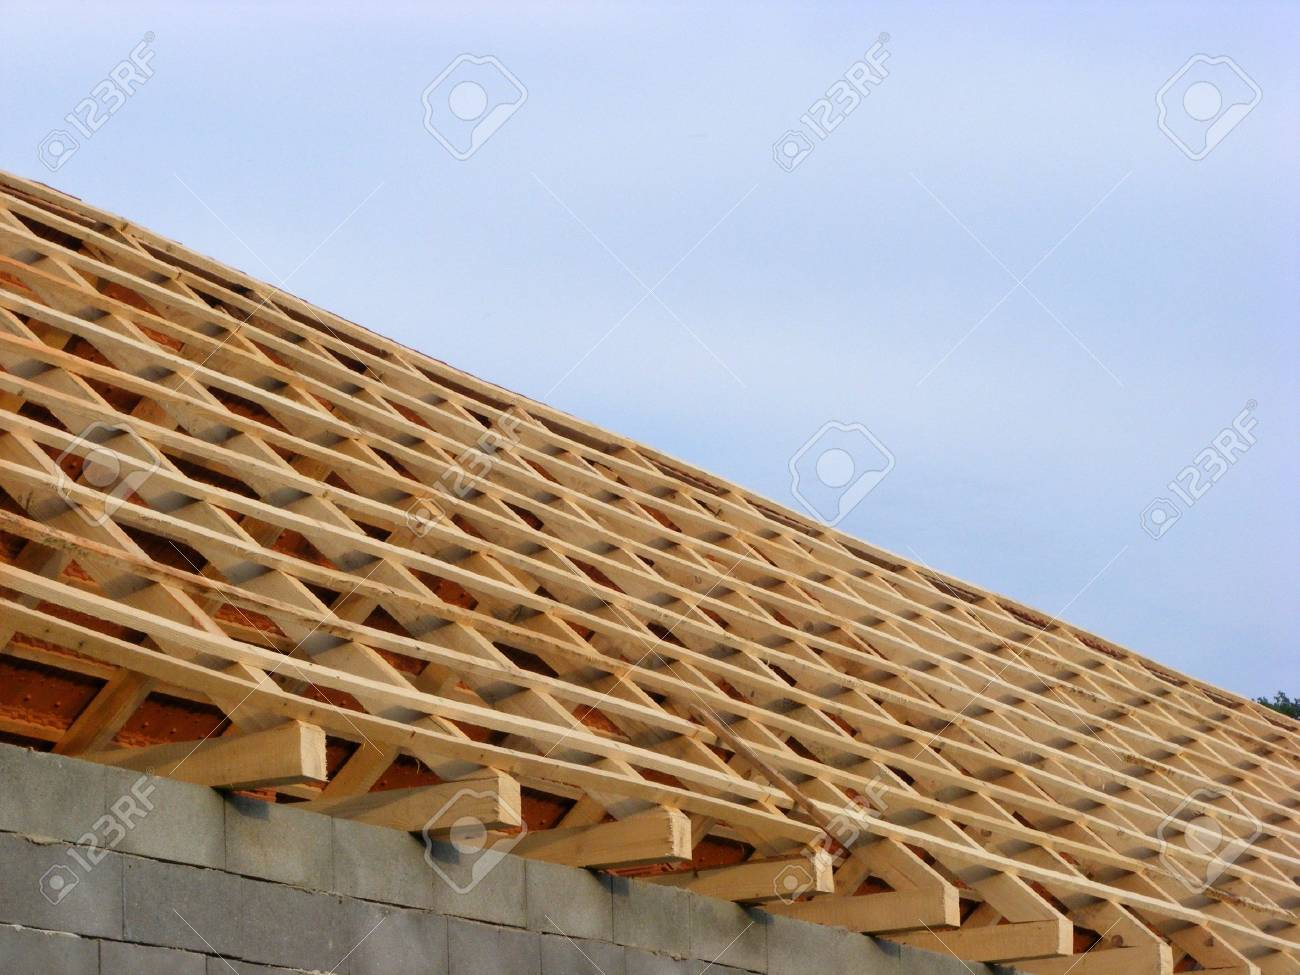 Old House Construction Roof With Tiles And Wooden Planks In The